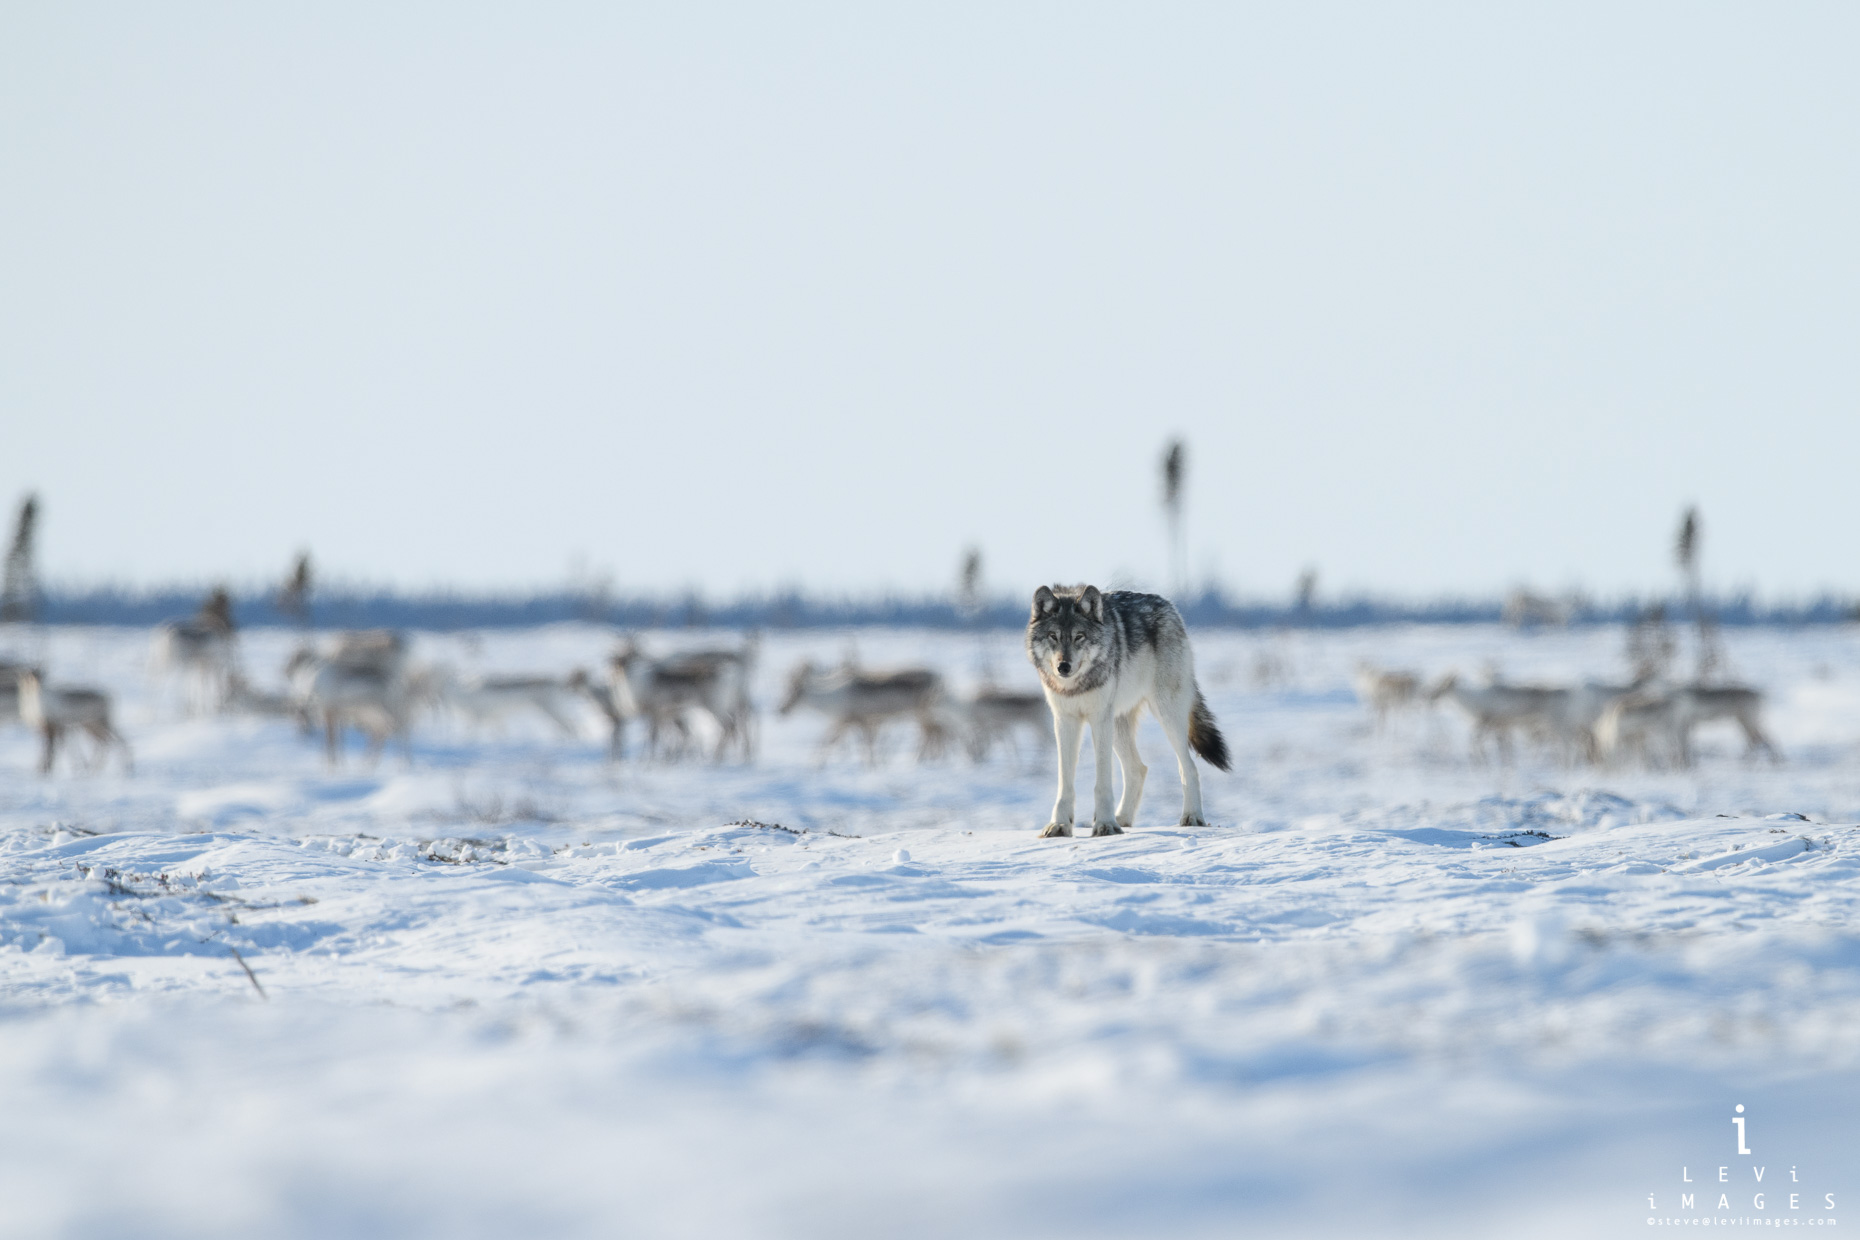 Gray Wolf (Canis lupus) with Caribou in the background. Wapusk National Park, Manitoba, Canada